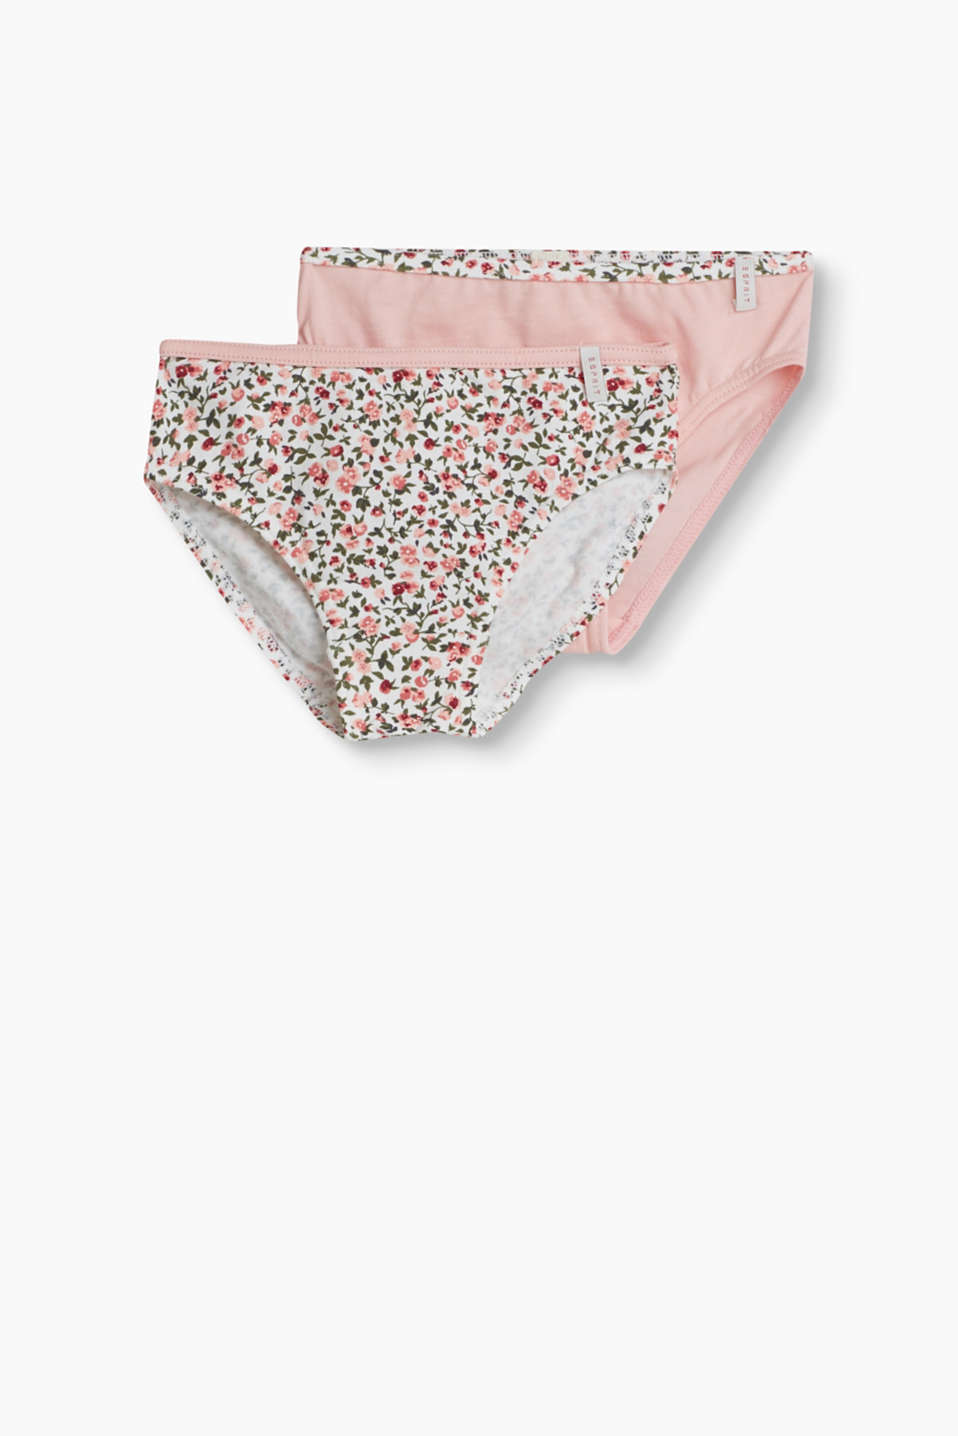 A pretty look, soft and comfortable: briefs in a practical double pack (plain and with a floral print)